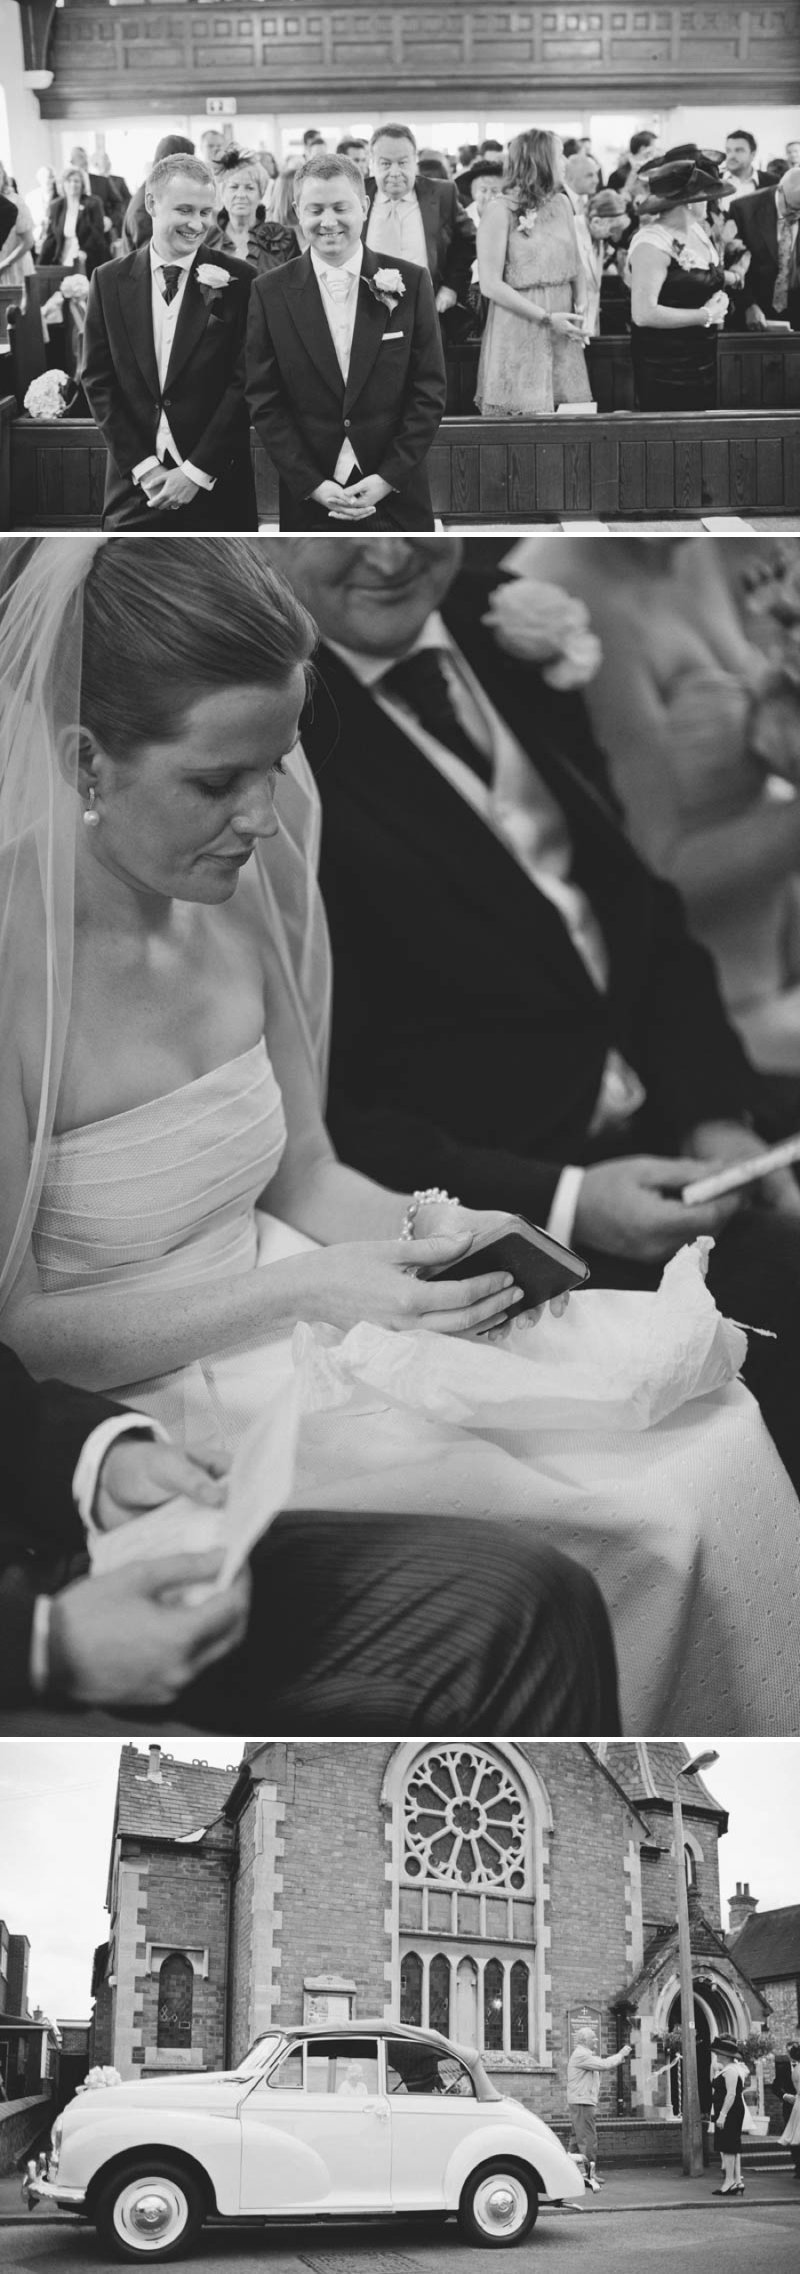 John Day Wedding Photography Reportage Warwickshire